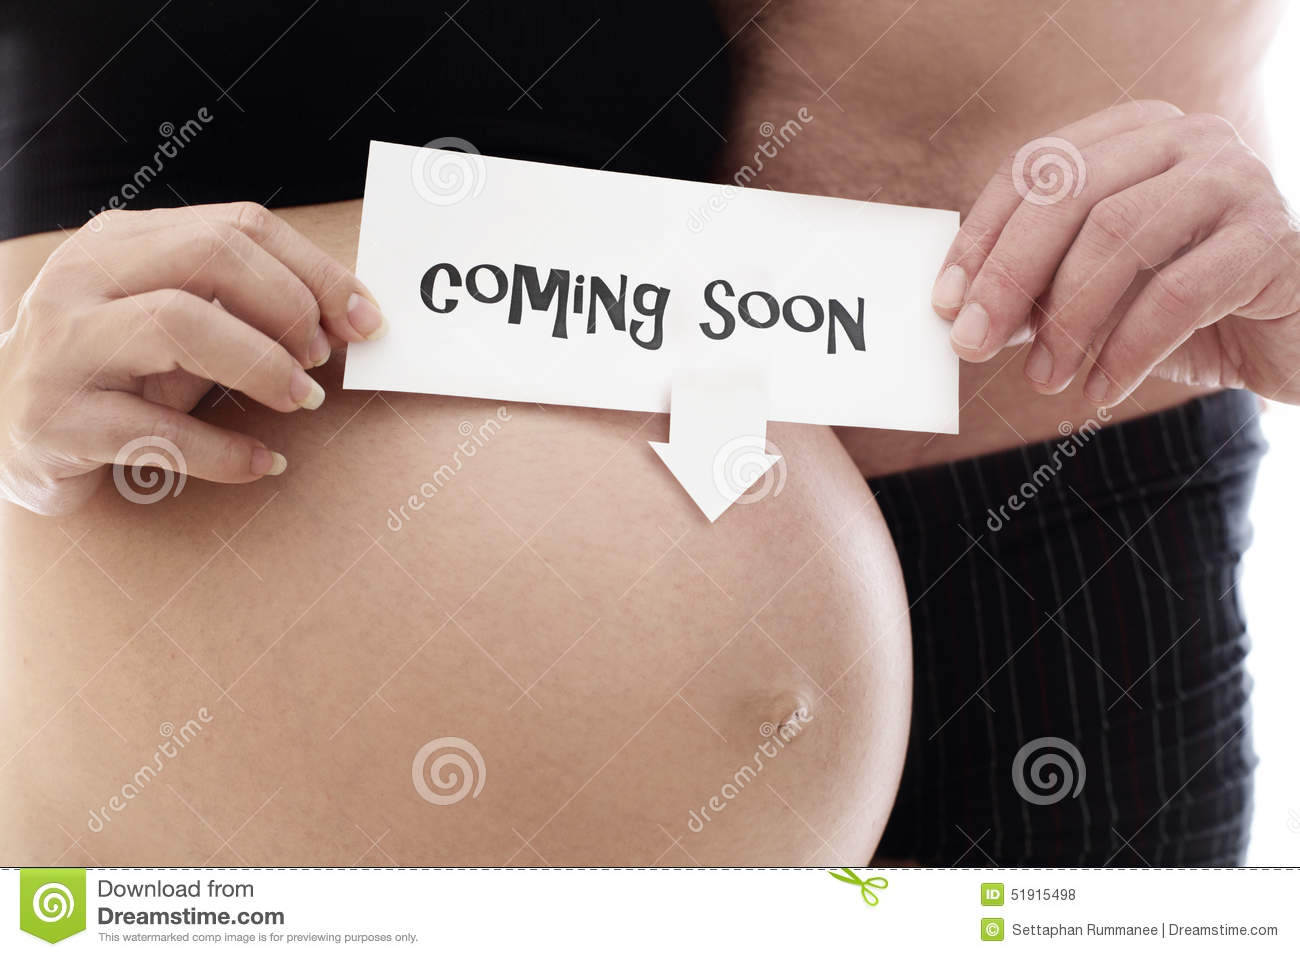 329 Baby Coming Soon Photos Free Royalty Free Stock Photos From Dreamstime